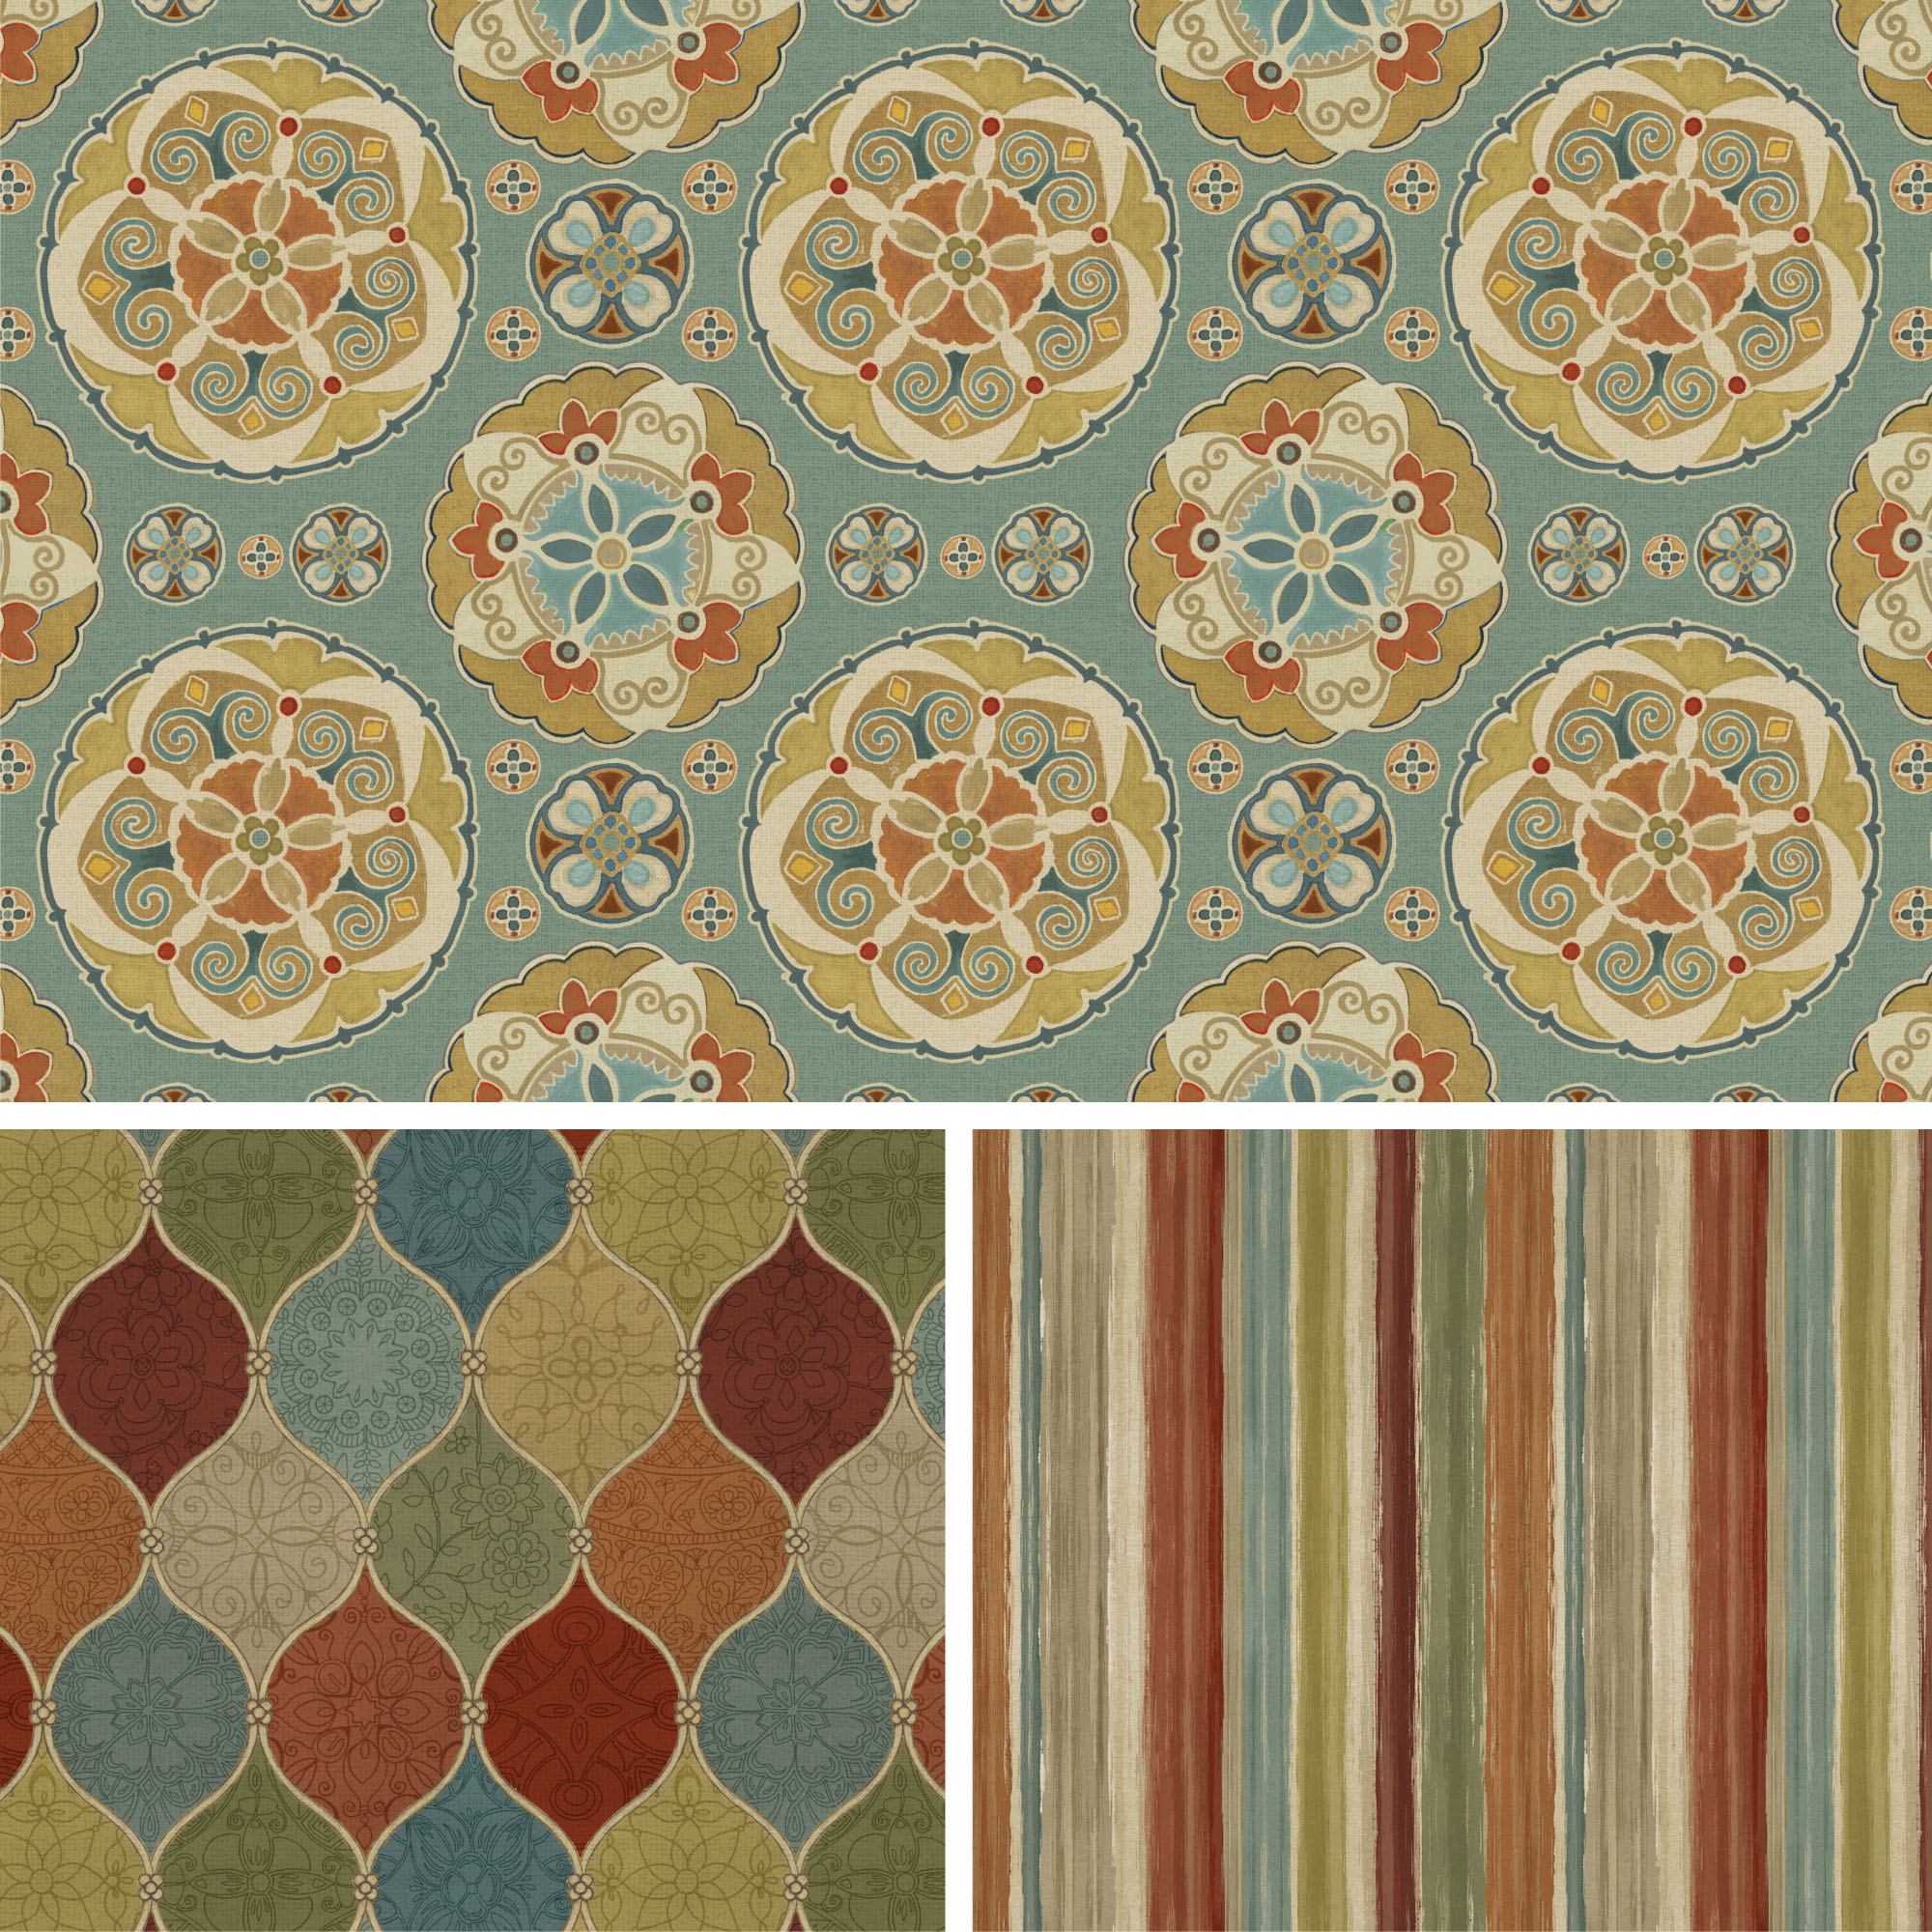 David Textiles Cotton Precut Fabric Spice Medallion Collection 1 Yd X 44 Inches